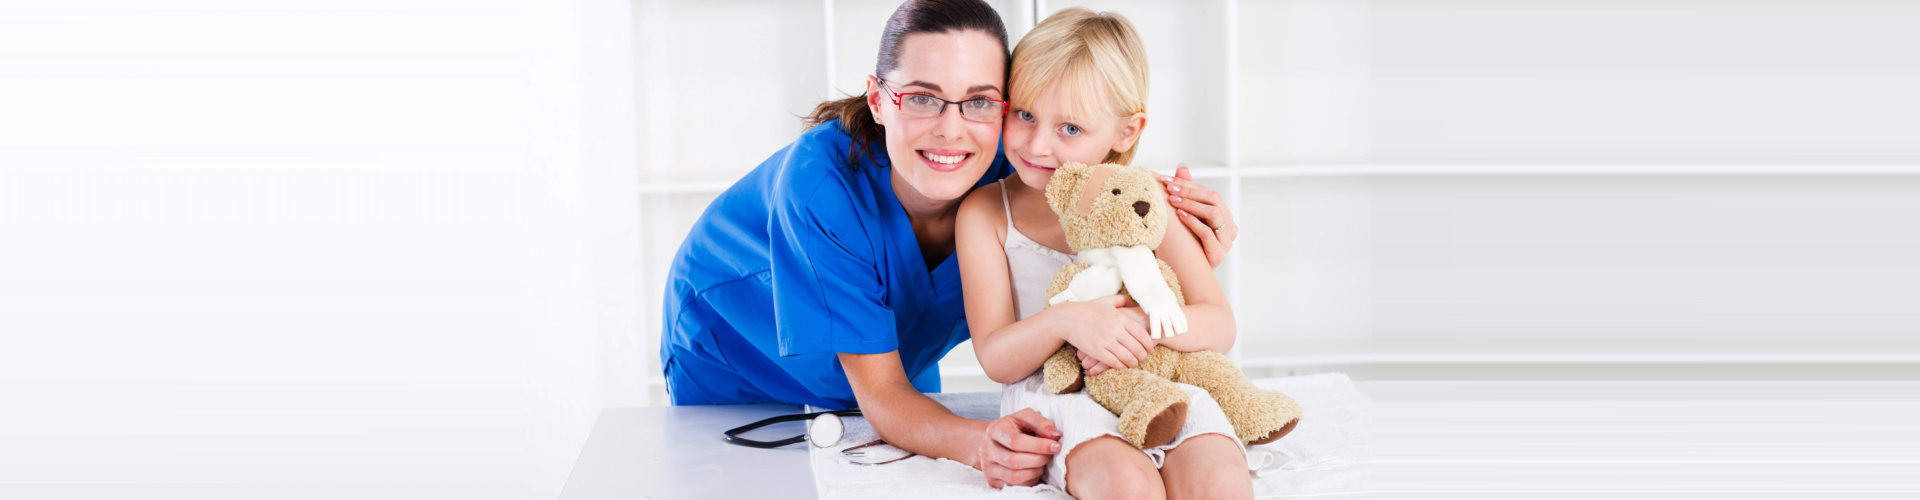 nurse and a kid smiling